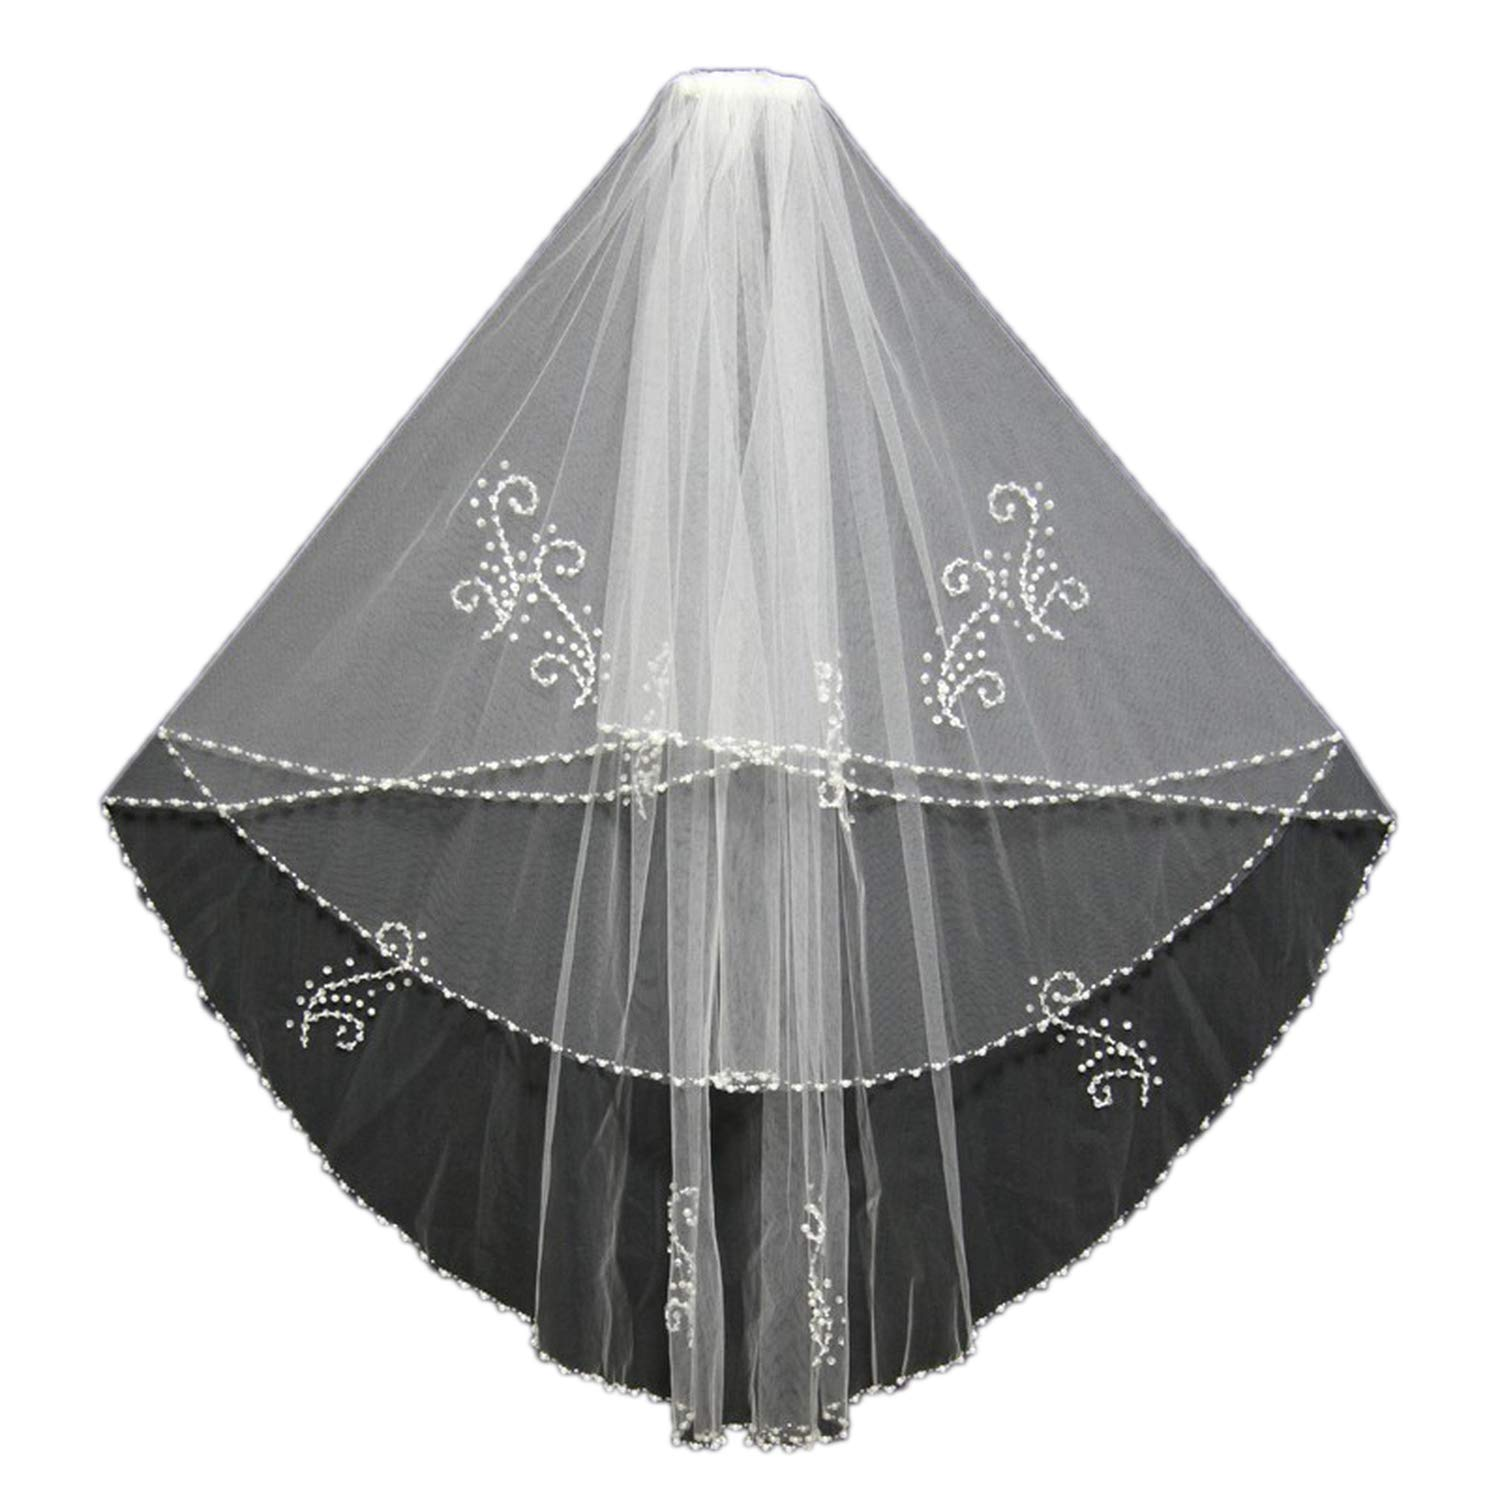 Two Layers Bridal Veils Beaded Pearls Beading Edge Wedding Veils Long About 75cm Wedding Bridal Accessories